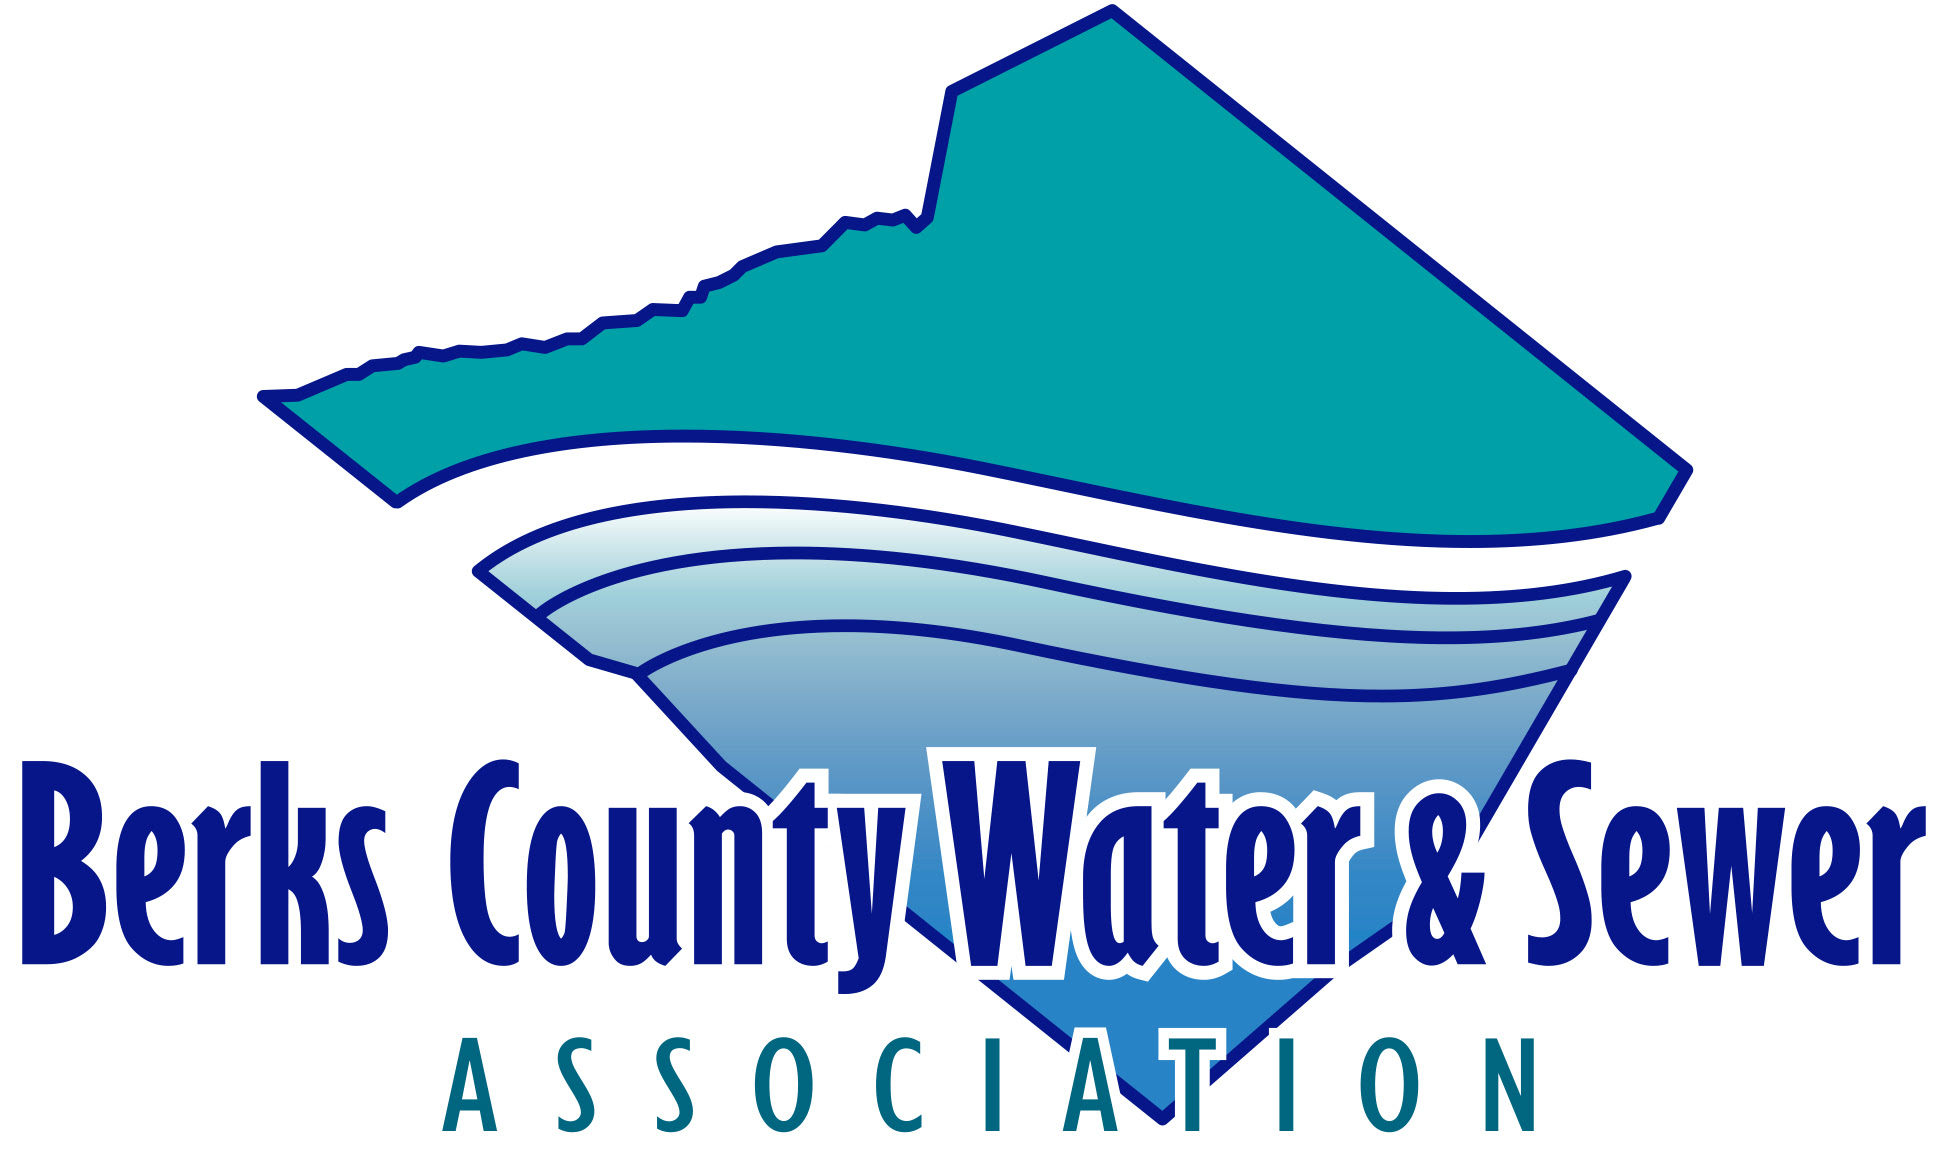 Berks County Pa Map, Berks County Water Sewer Association Logo, Berks County Pa Map